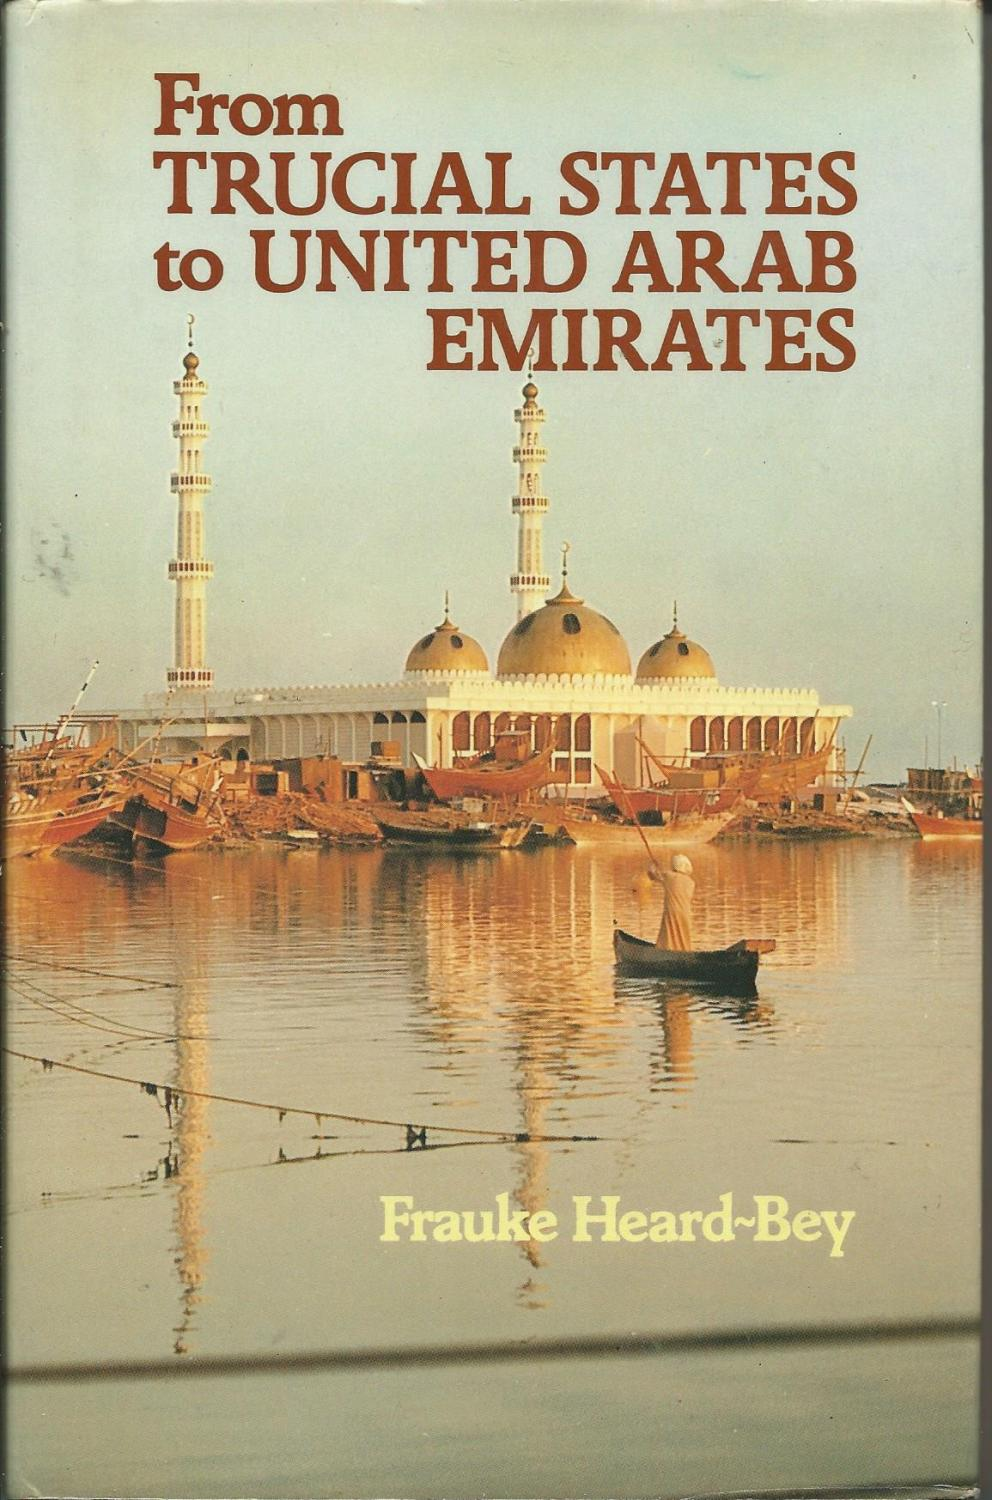 From Trucial States to United Arab Emirates - A Society in Transition. Heard-Bey, Frauke: